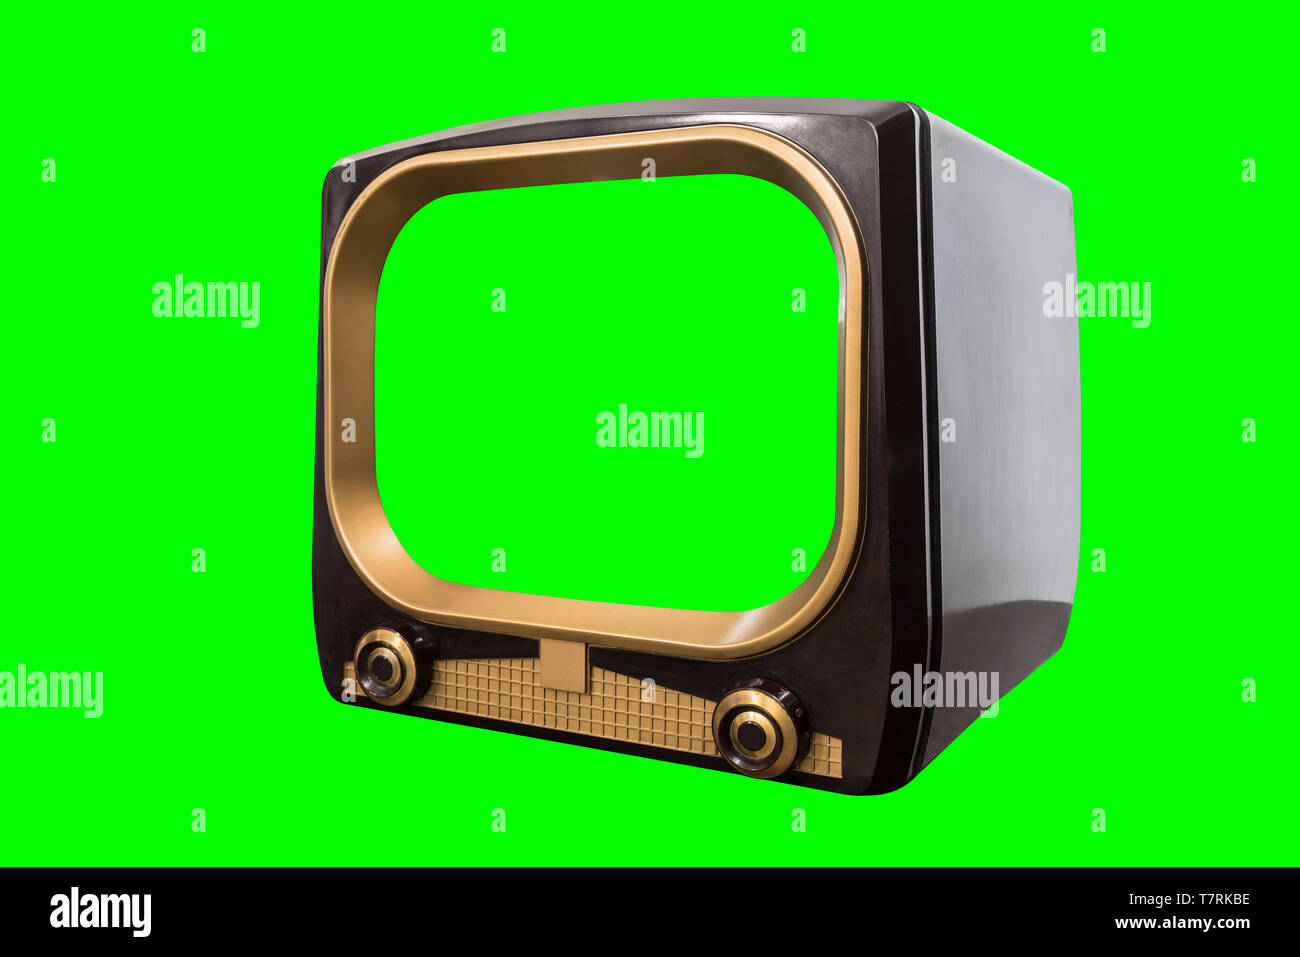 Vintage 1950s television isolated with chroma green screen and background. - Stock Image